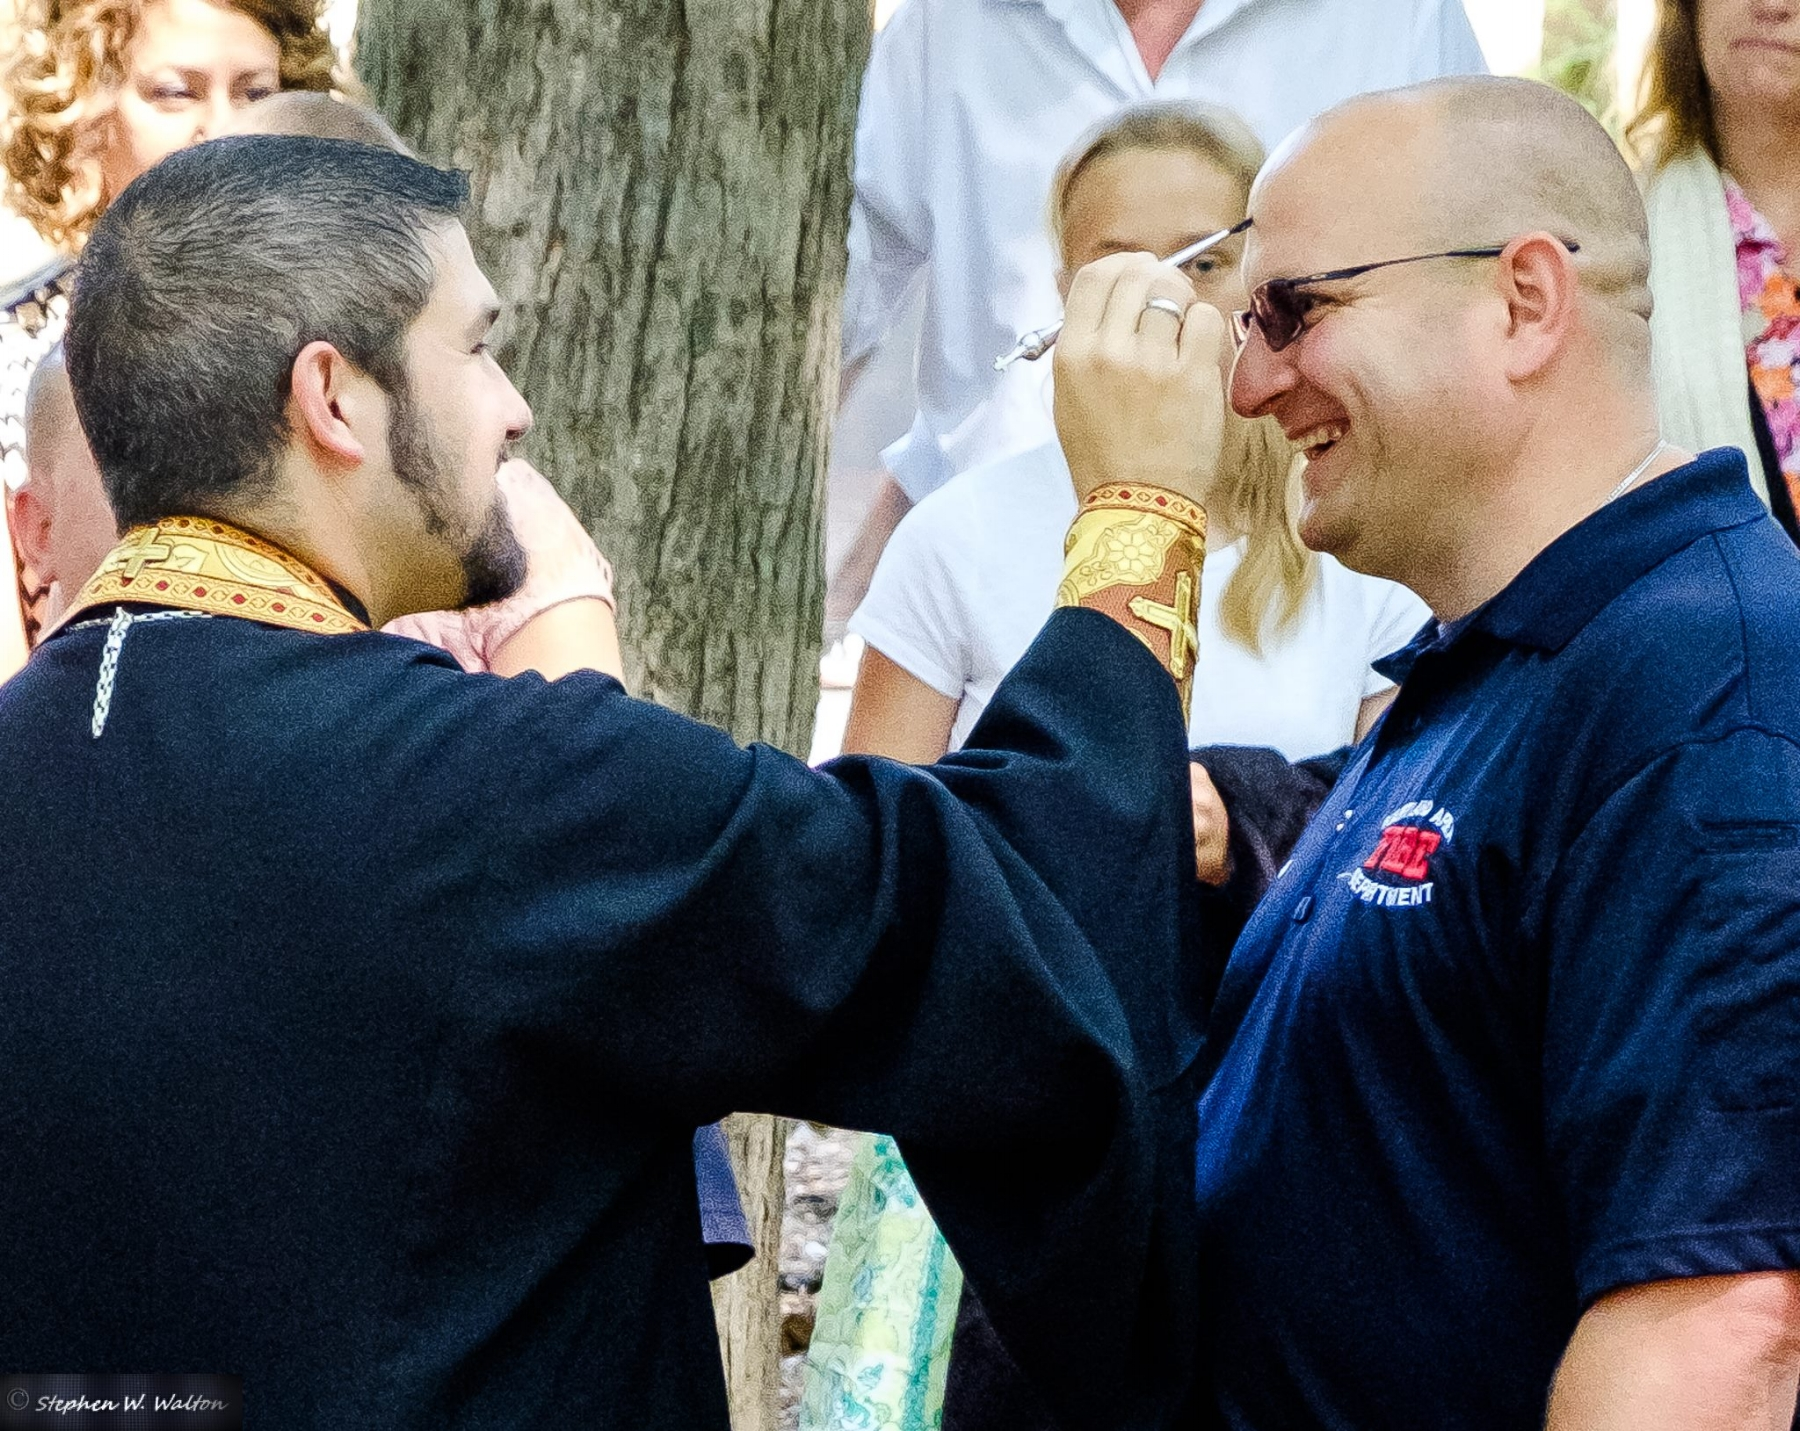 One of the parish families newest members, Brion Cooley, who serves as an EMT and a firefighter, helped to coordinate the first responders, and get the word out about the special blessing!